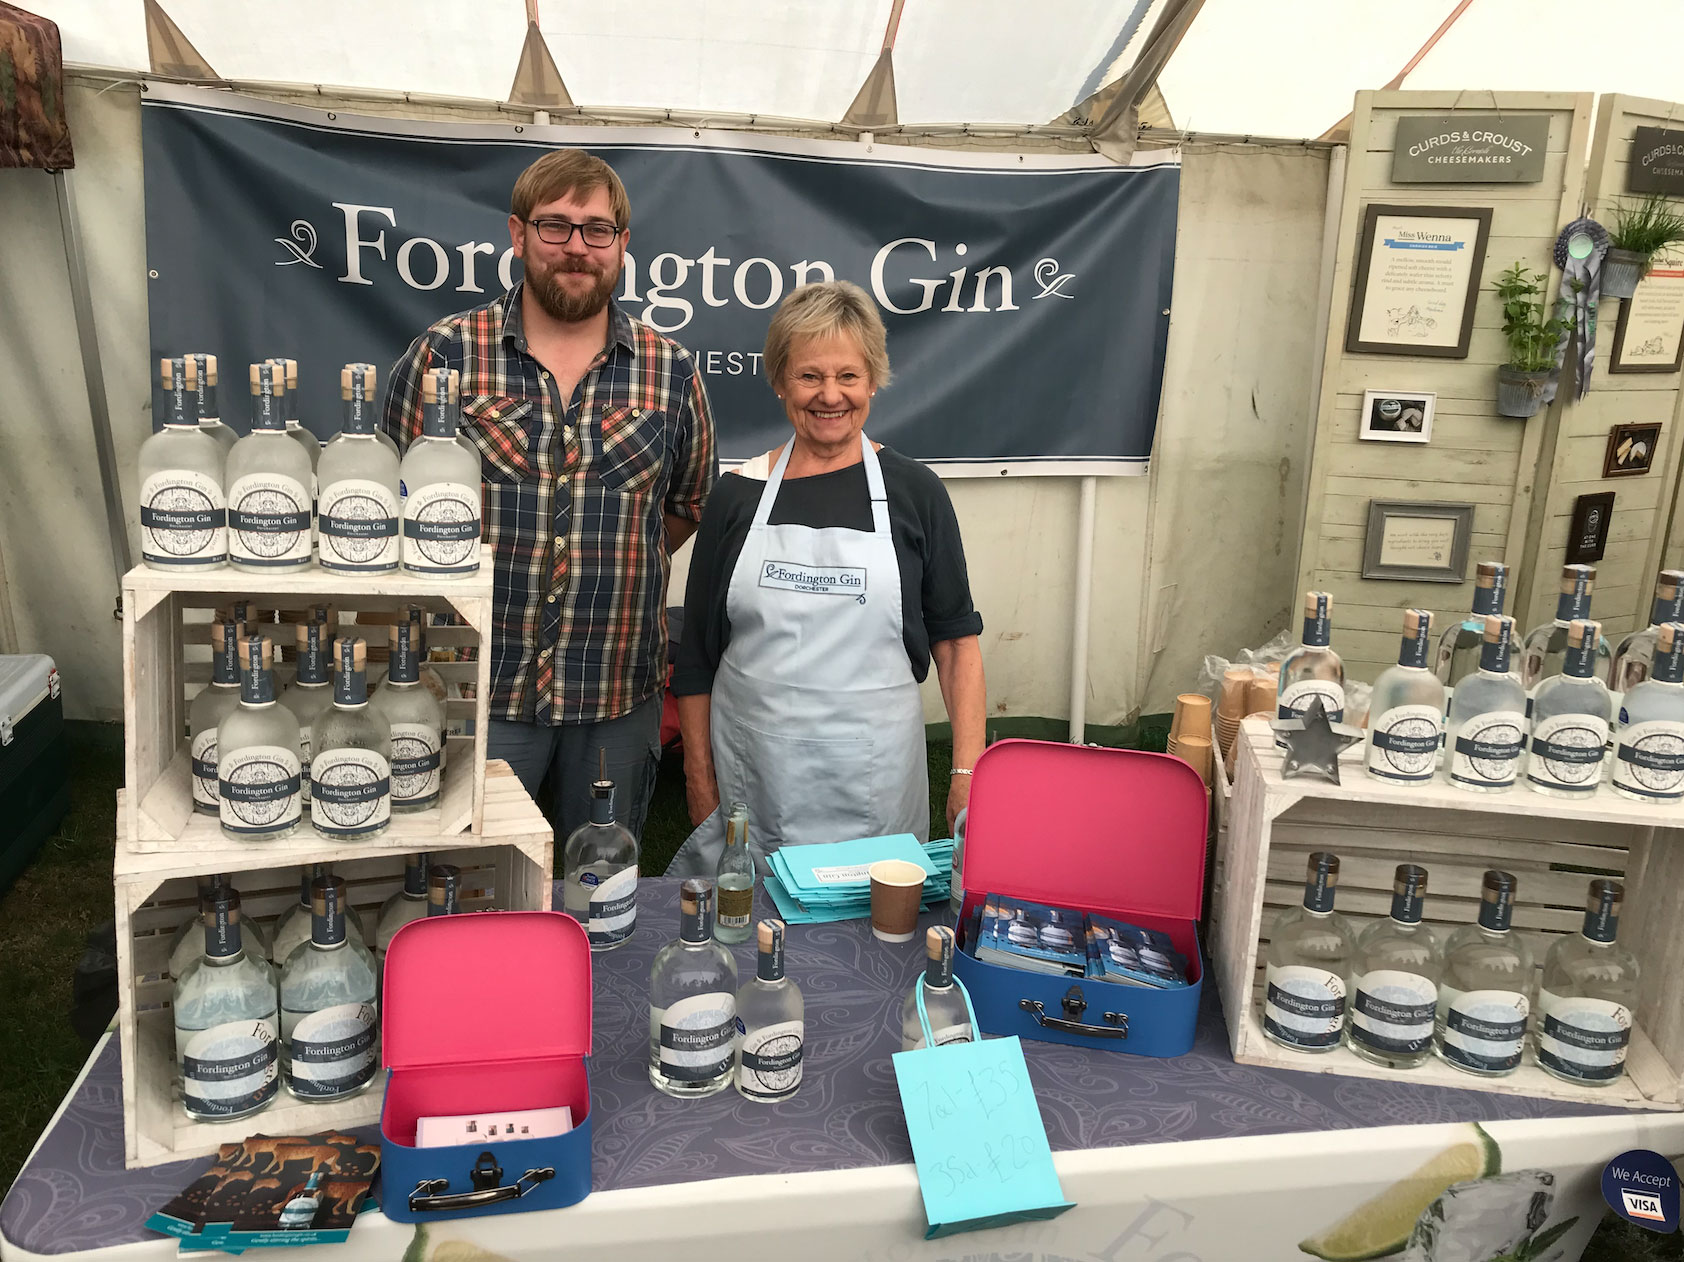 Fordington Gin at the Cheese Festival 2019